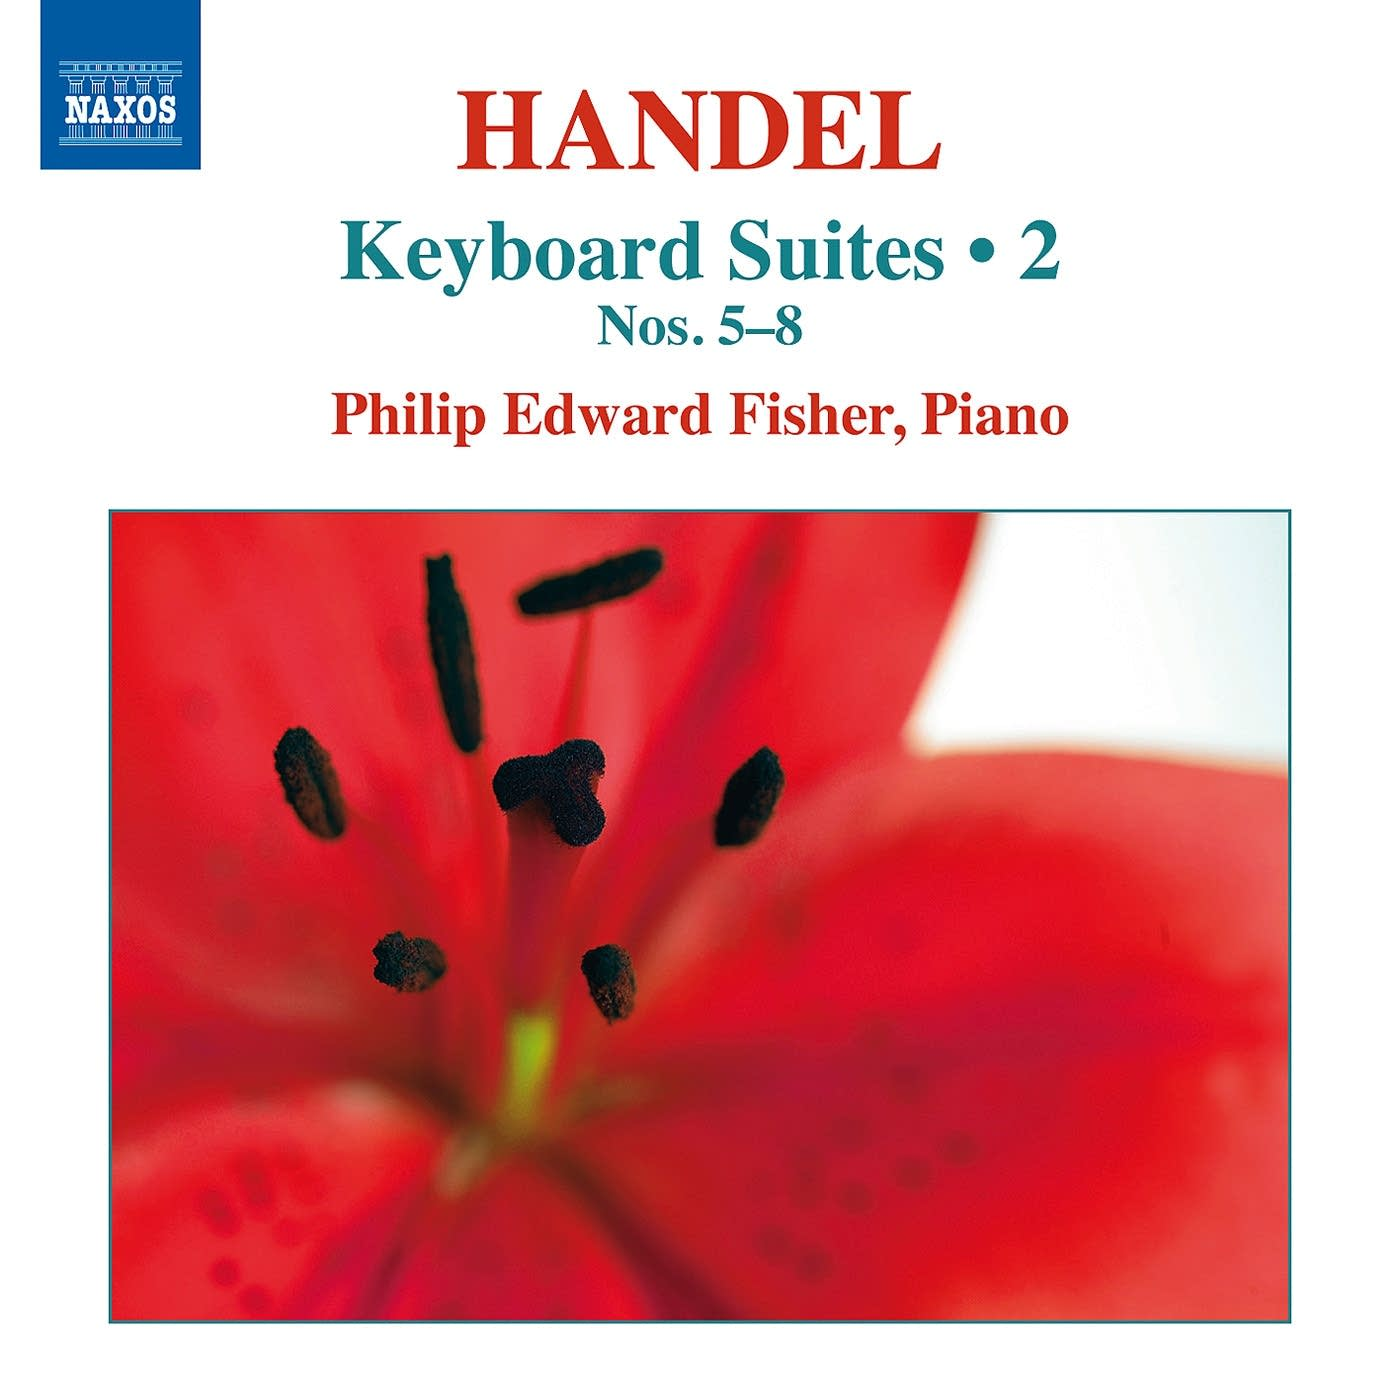 George Frederic Handel - Keyboard Suite No. 5: IV. Air and Doubles